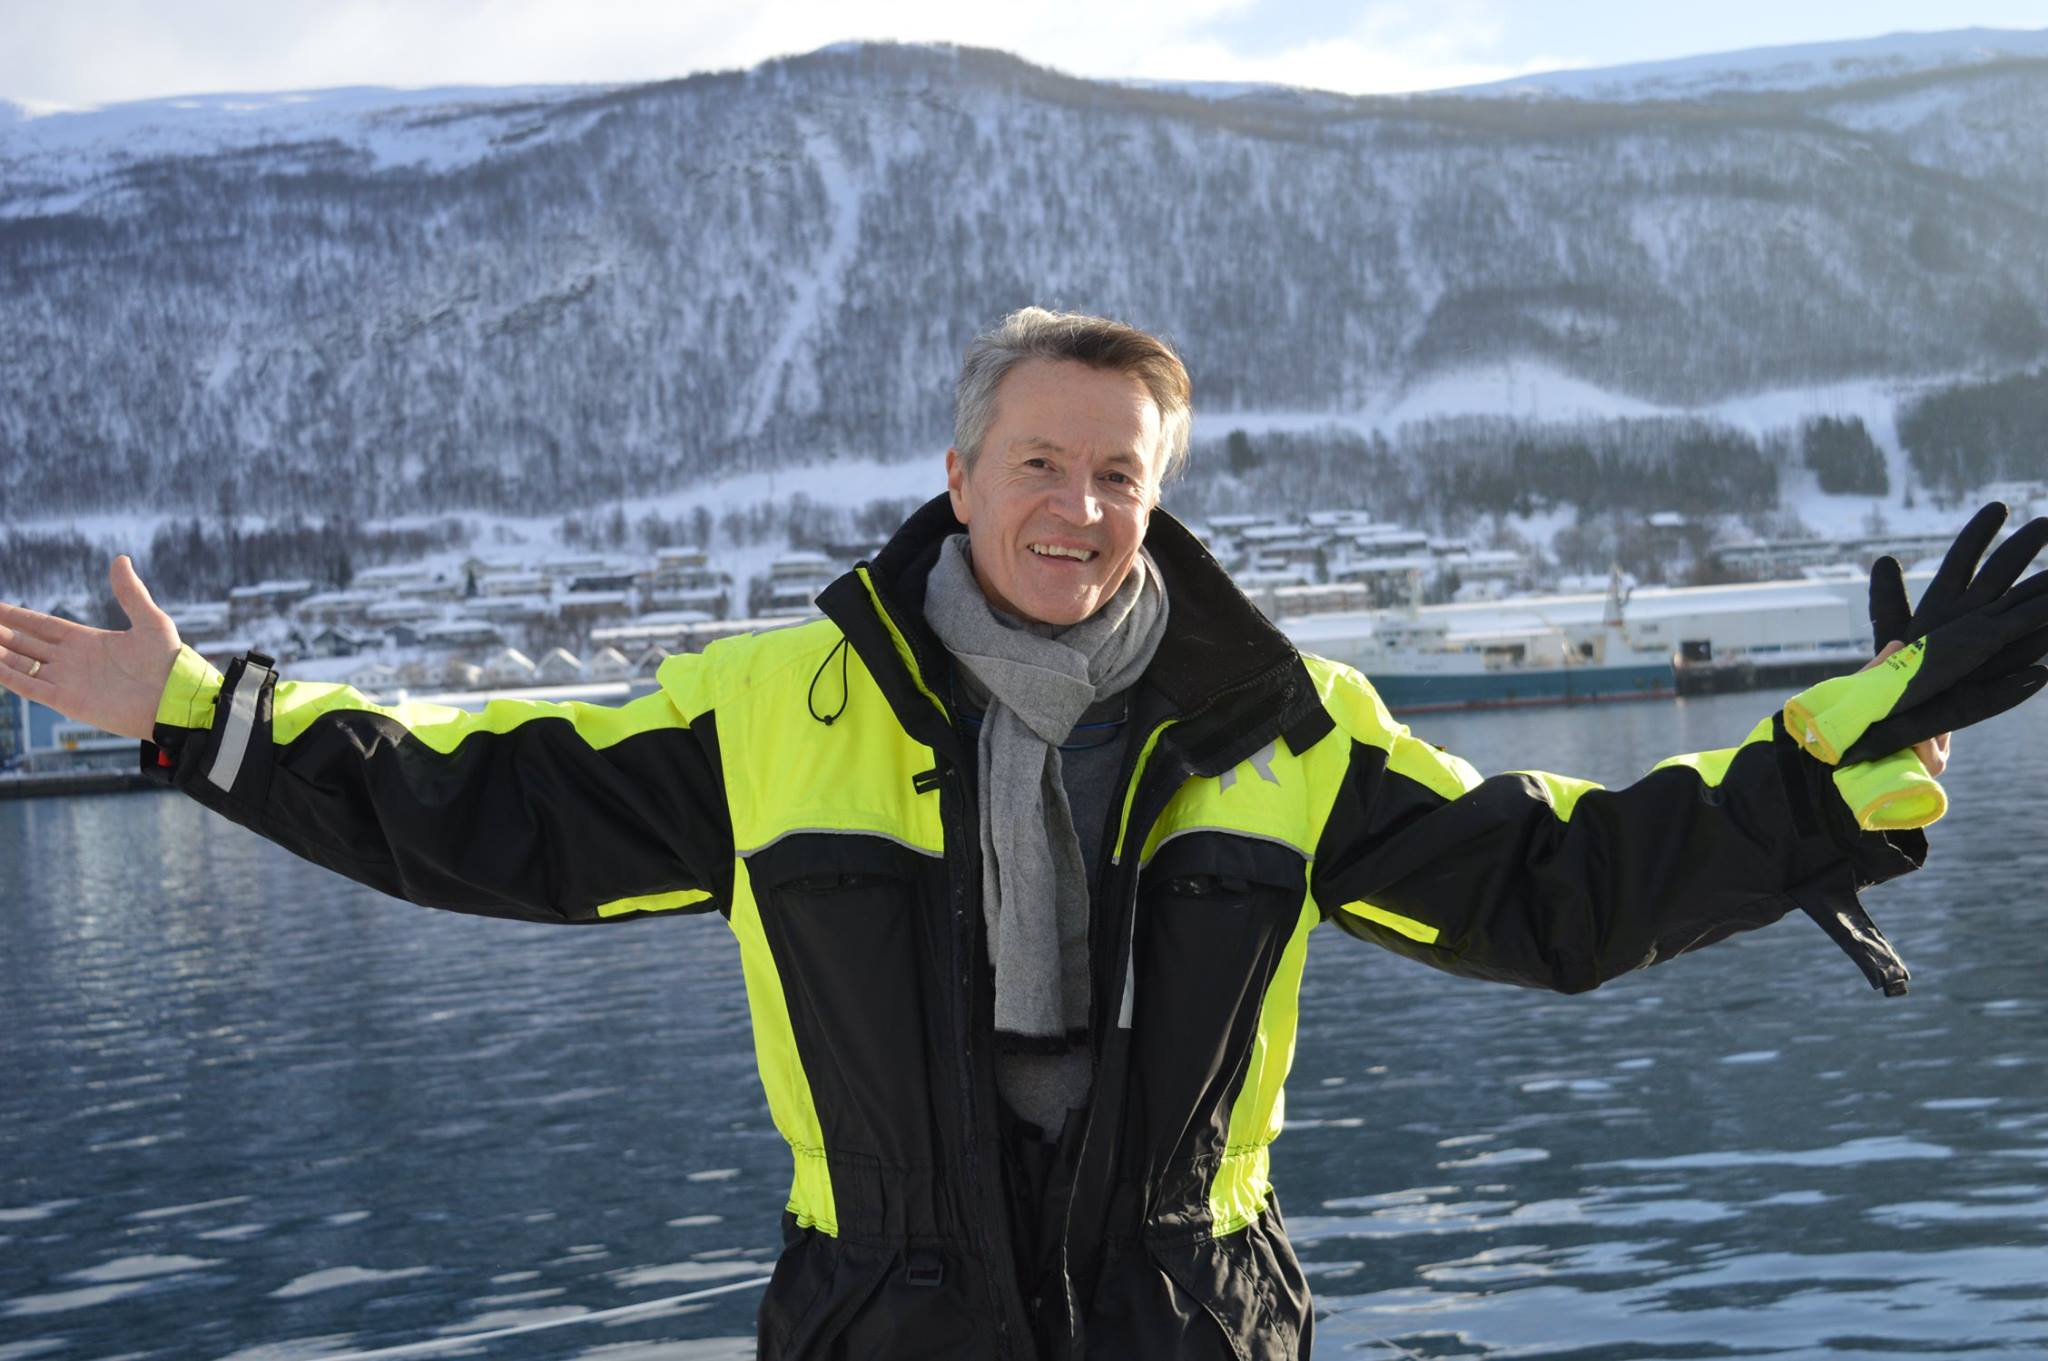 Welcome to Arctic Cruise In Norway. - Hi,My name is Kurt Arild Larsen. I am the general manager, skipper and owner of the company. I am married to Fabiane and have 3 children, Aleksander, Kristina and Emily.  I am also a grandfather to two beautiful male children, Julian and Wilhelm.We are waiting for our new male child, Leonard November 2018 :)I grew up in a small fishing village and worked at the sea with my father when I was younger. My dream was to be a captain of a tourist ship, but when my father died at sea, I ended up in the IT industry, where I worked until 2013/14.I bring back my dream in 2013 and have worked hard to make this a company we can live off.We are small, but focus on giving our guests an experience that last the rest of their lives. Many of our guests say that this is more than they had dreamed of.Our Important values are courtesy, honesty and joy.We hope to give you experiences, - a